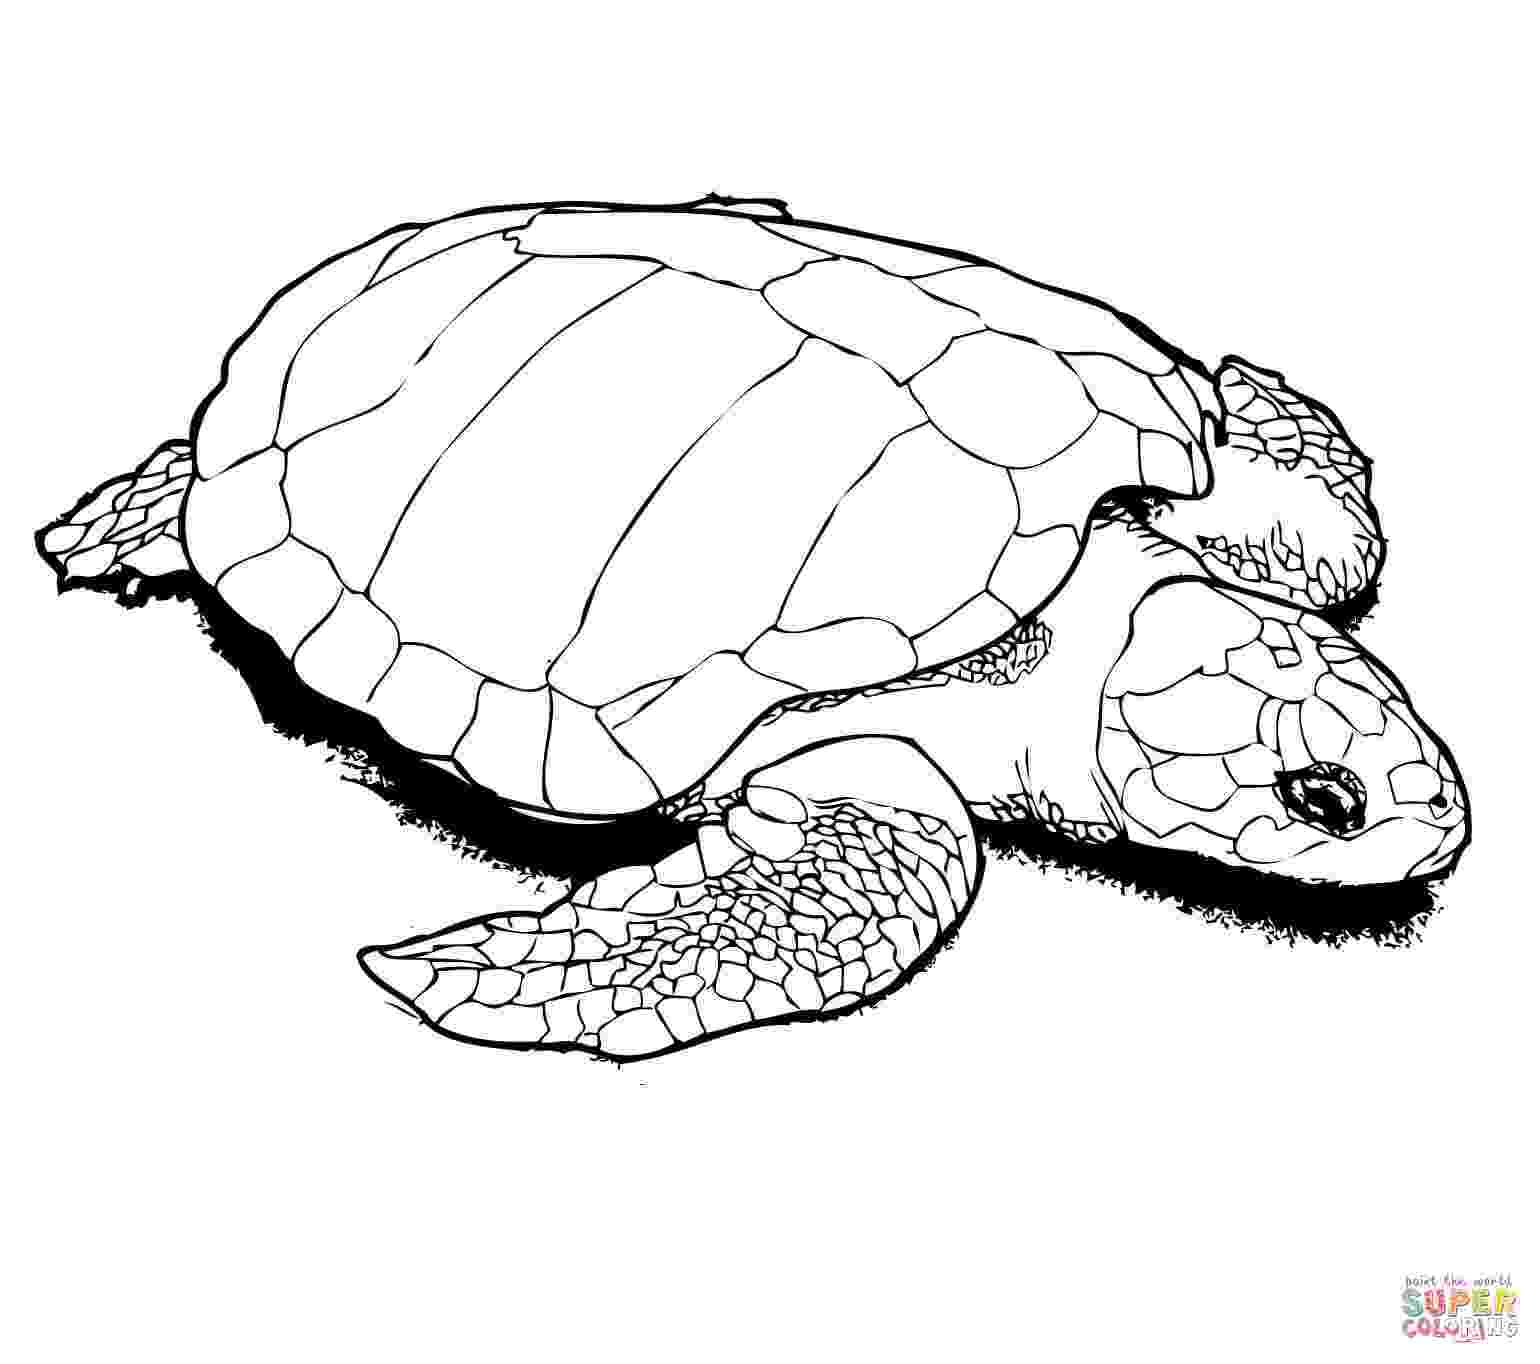 sea turtles coloring pages sea turtle coloring pages to download and print for free sea coloring turtles pages